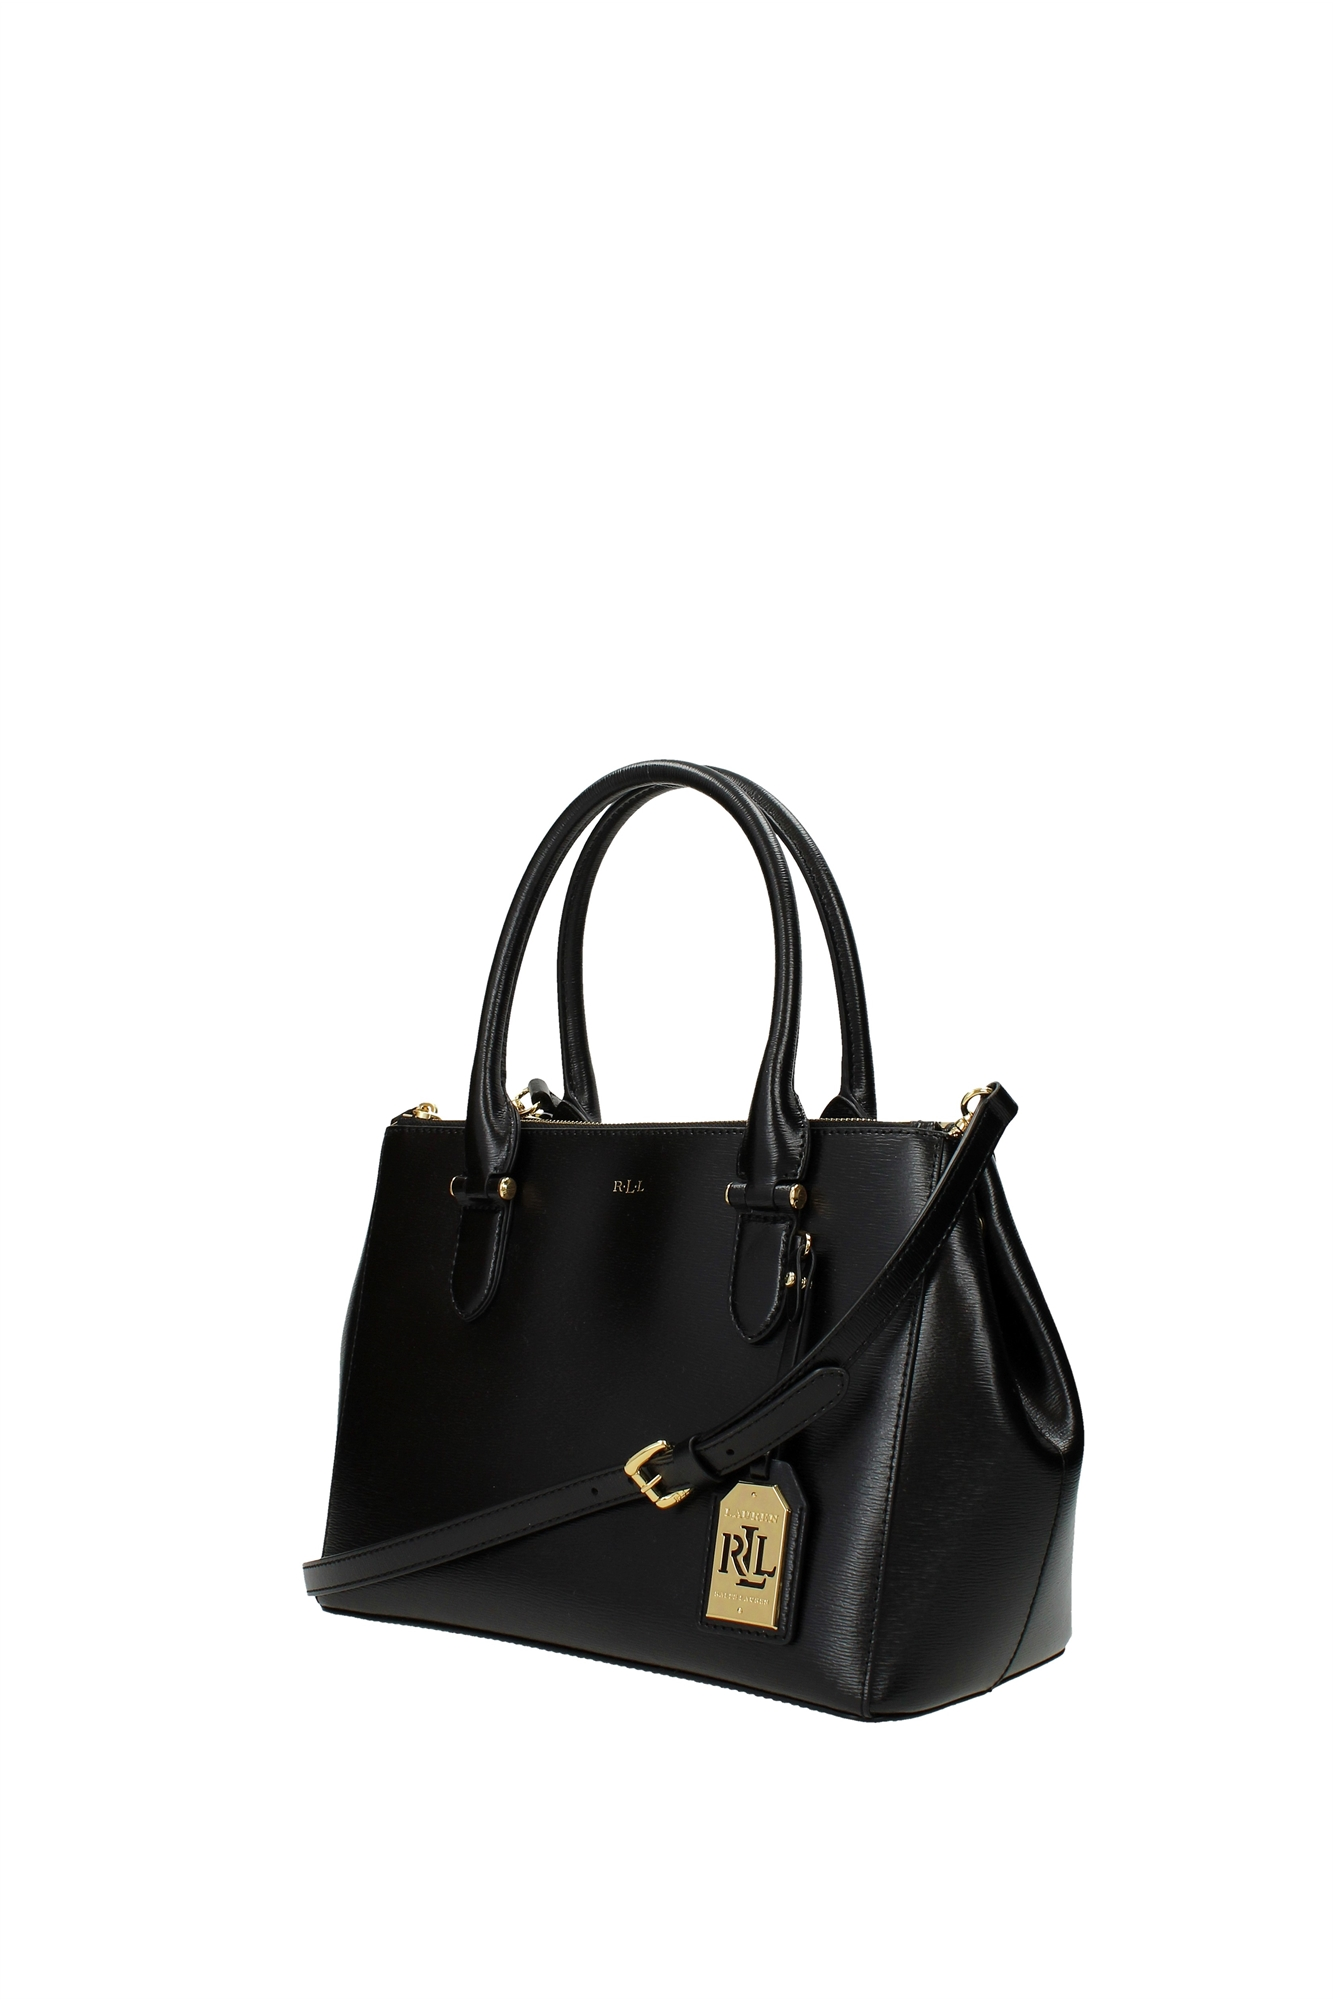 handtasche ralph lauren damen leder schwarz n91lndzsr2sc1vola7 ebay. Black Bedroom Furniture Sets. Home Design Ideas